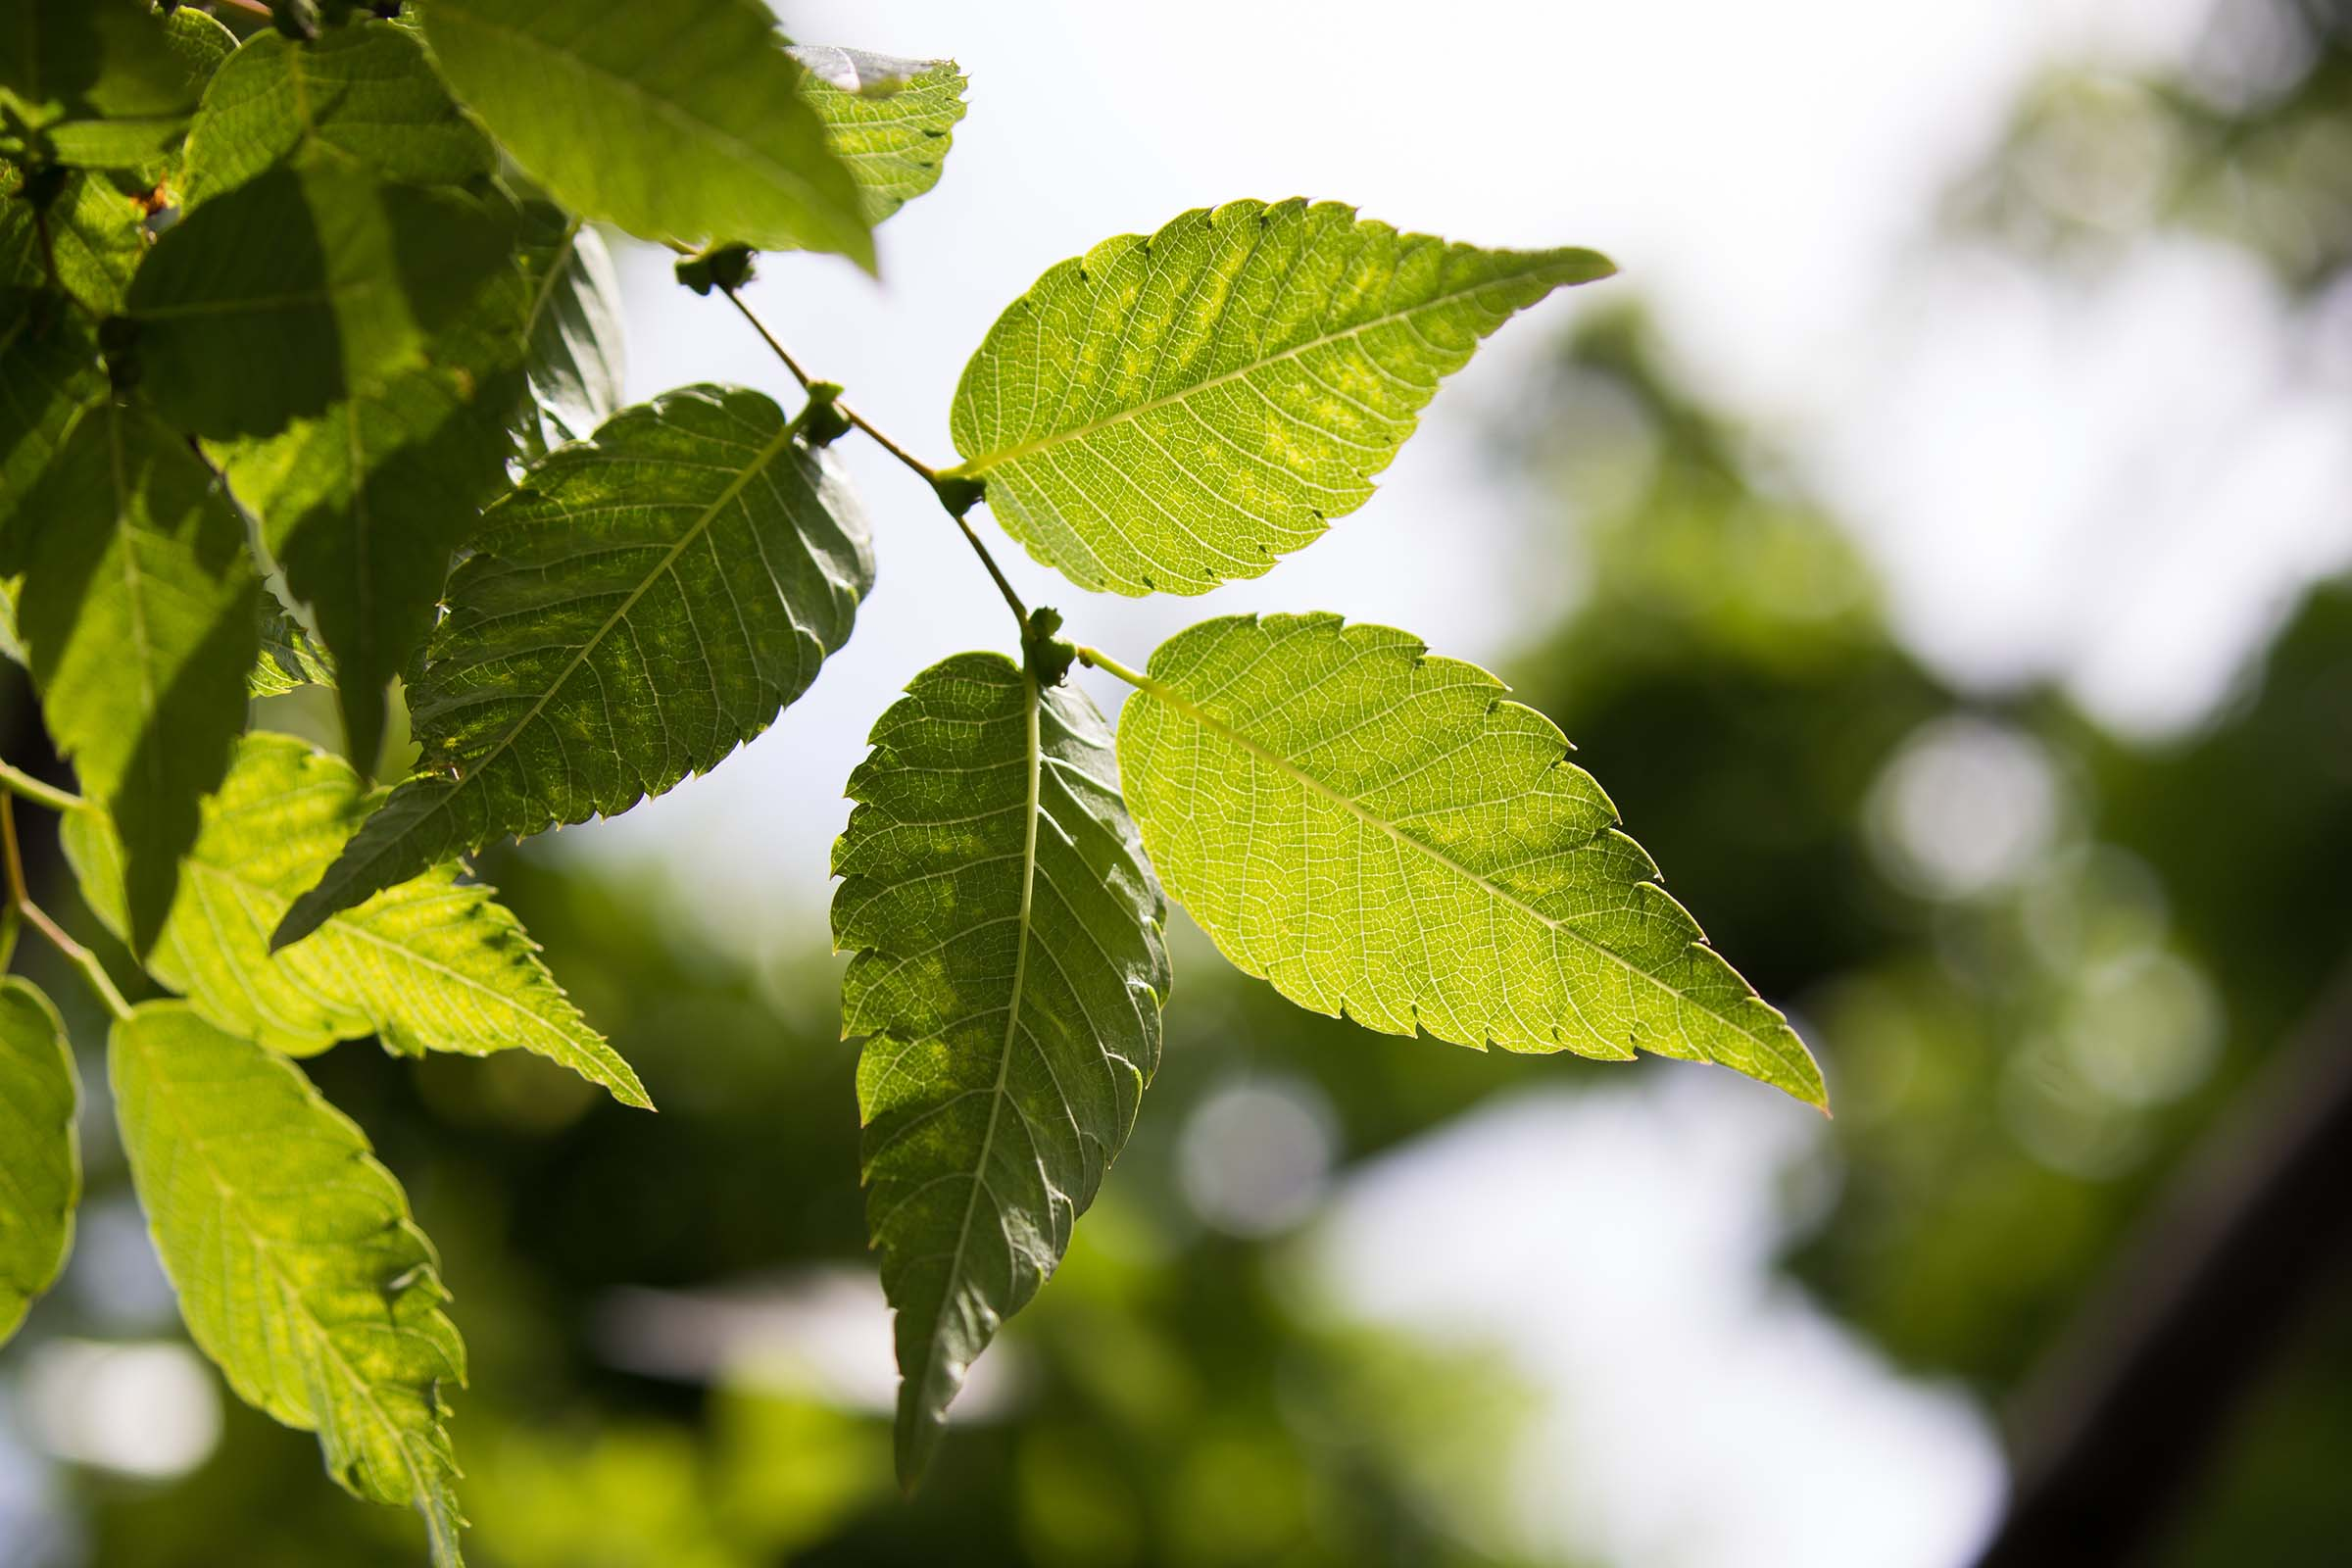 The wind blows the Japanese Zelcova tree leaves which are ridged and pointed